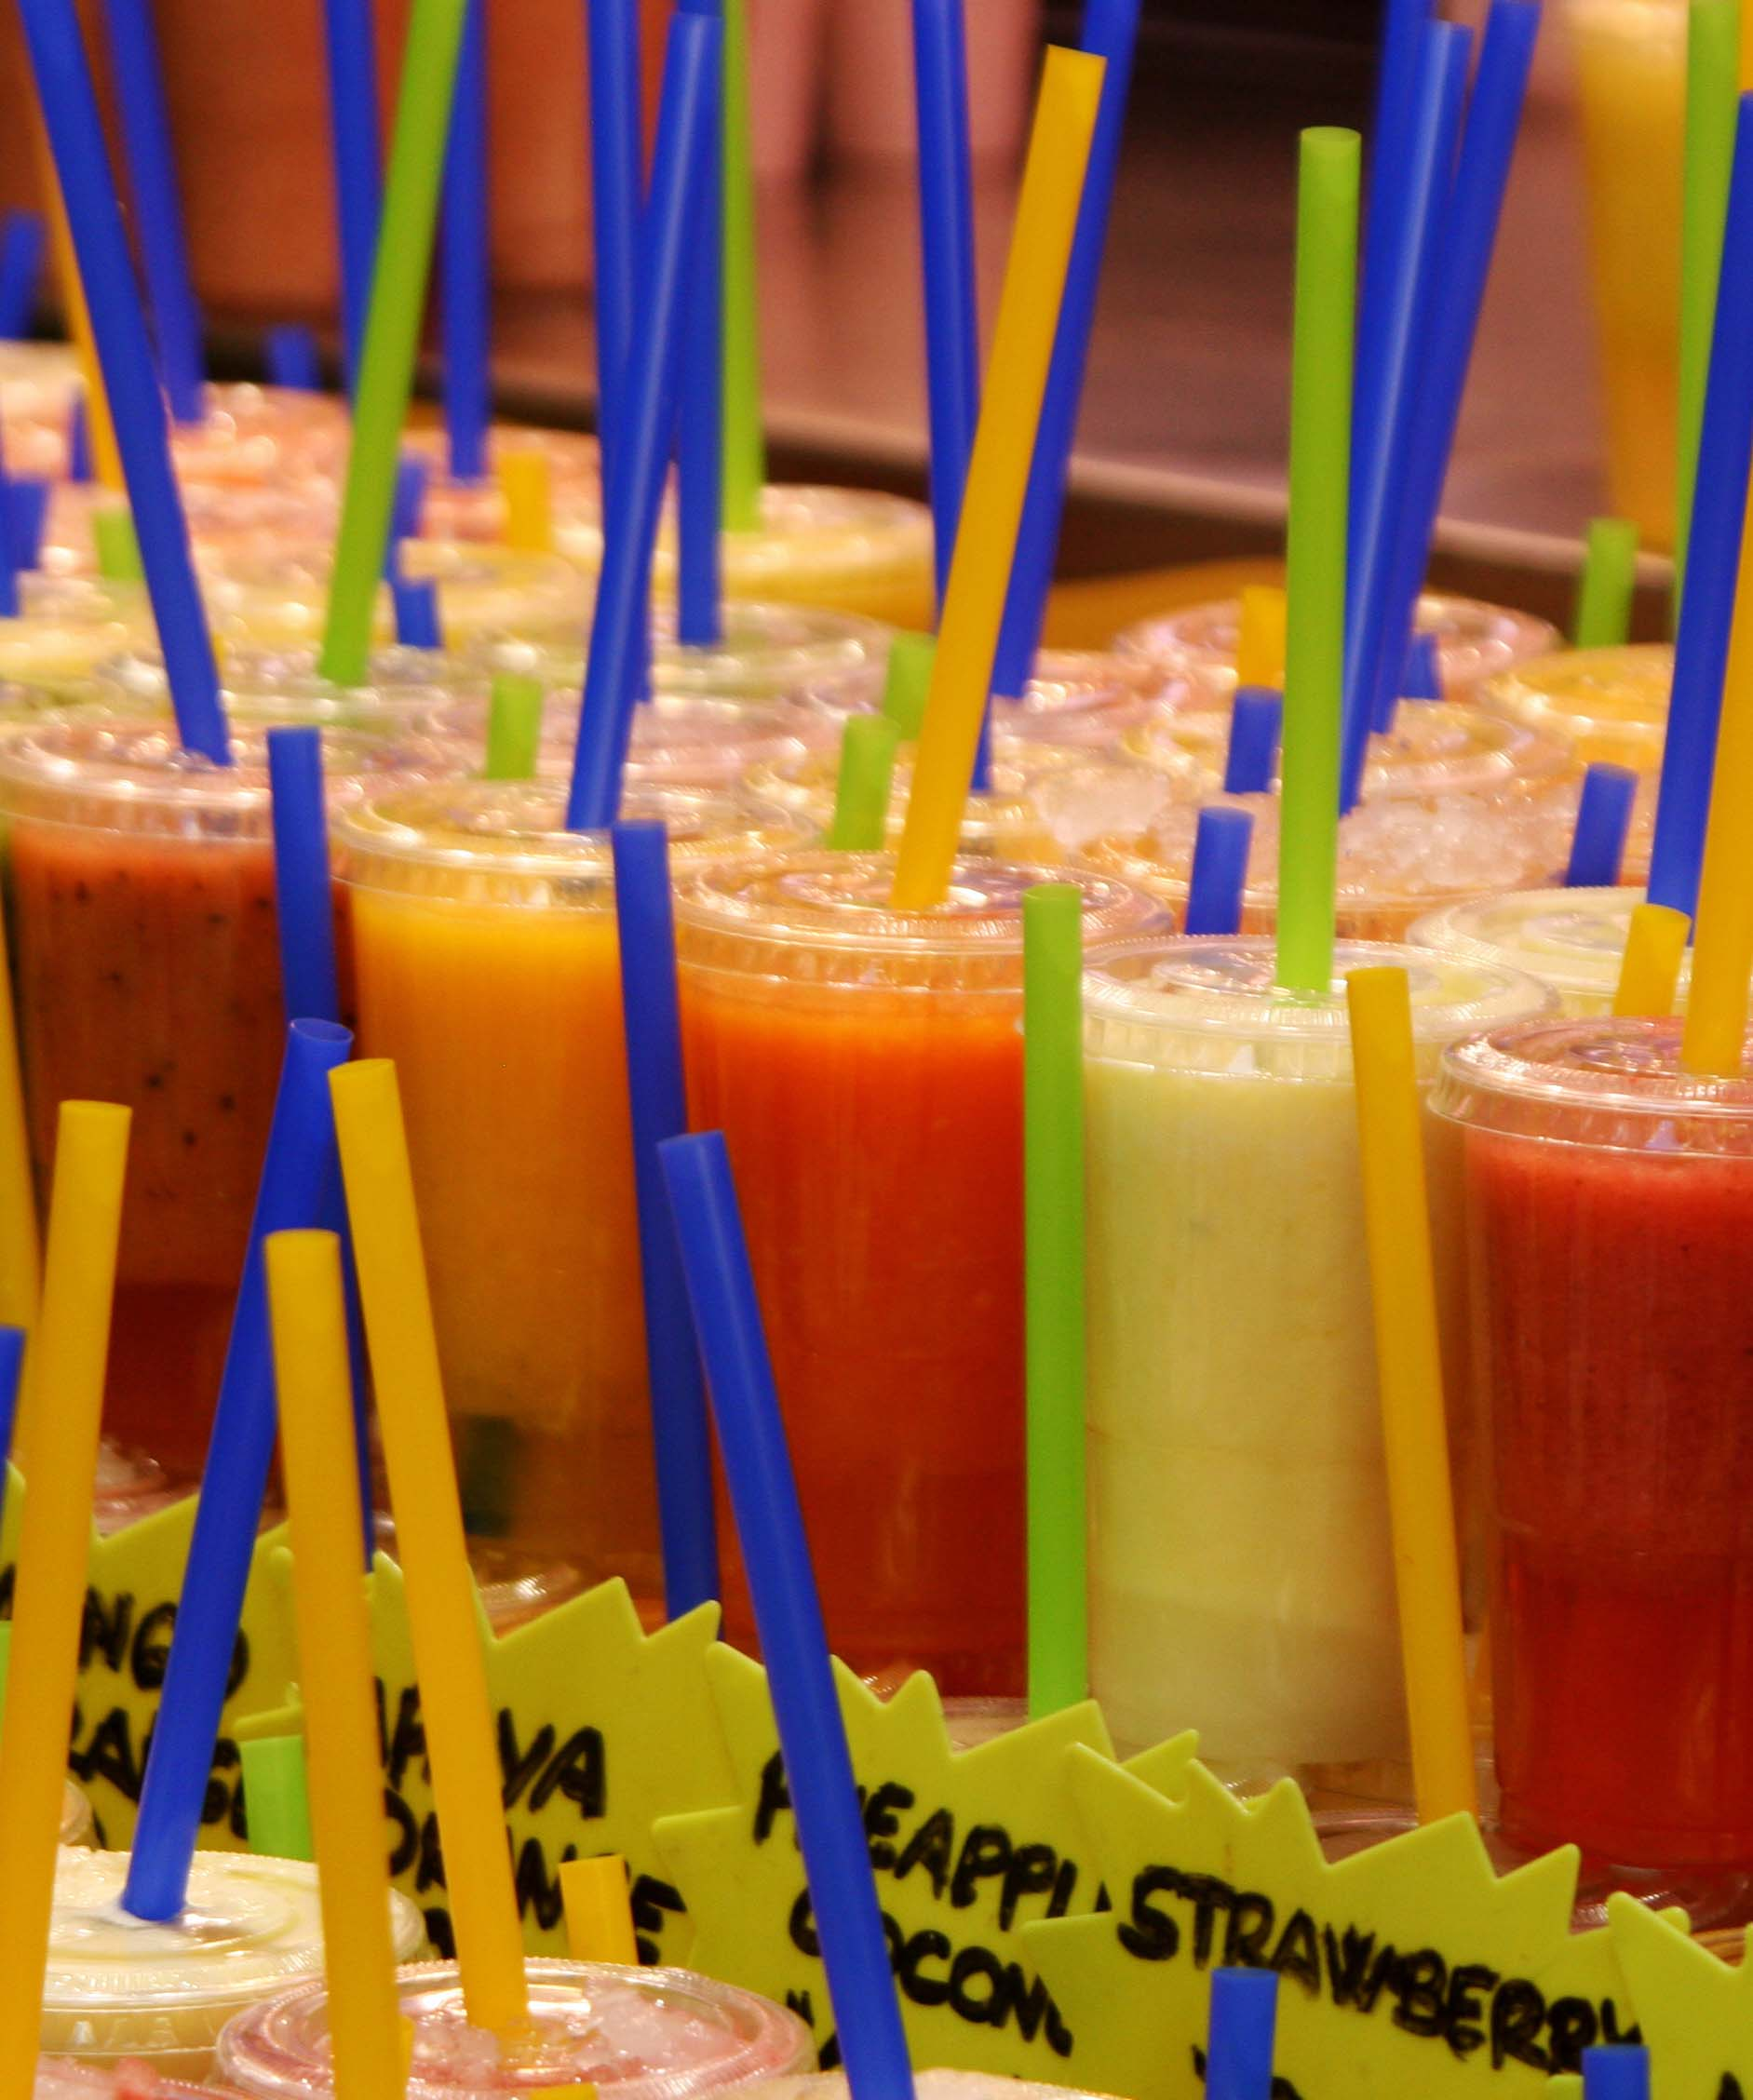 Delicious fruit drinks at La Boqueria in Barcelona